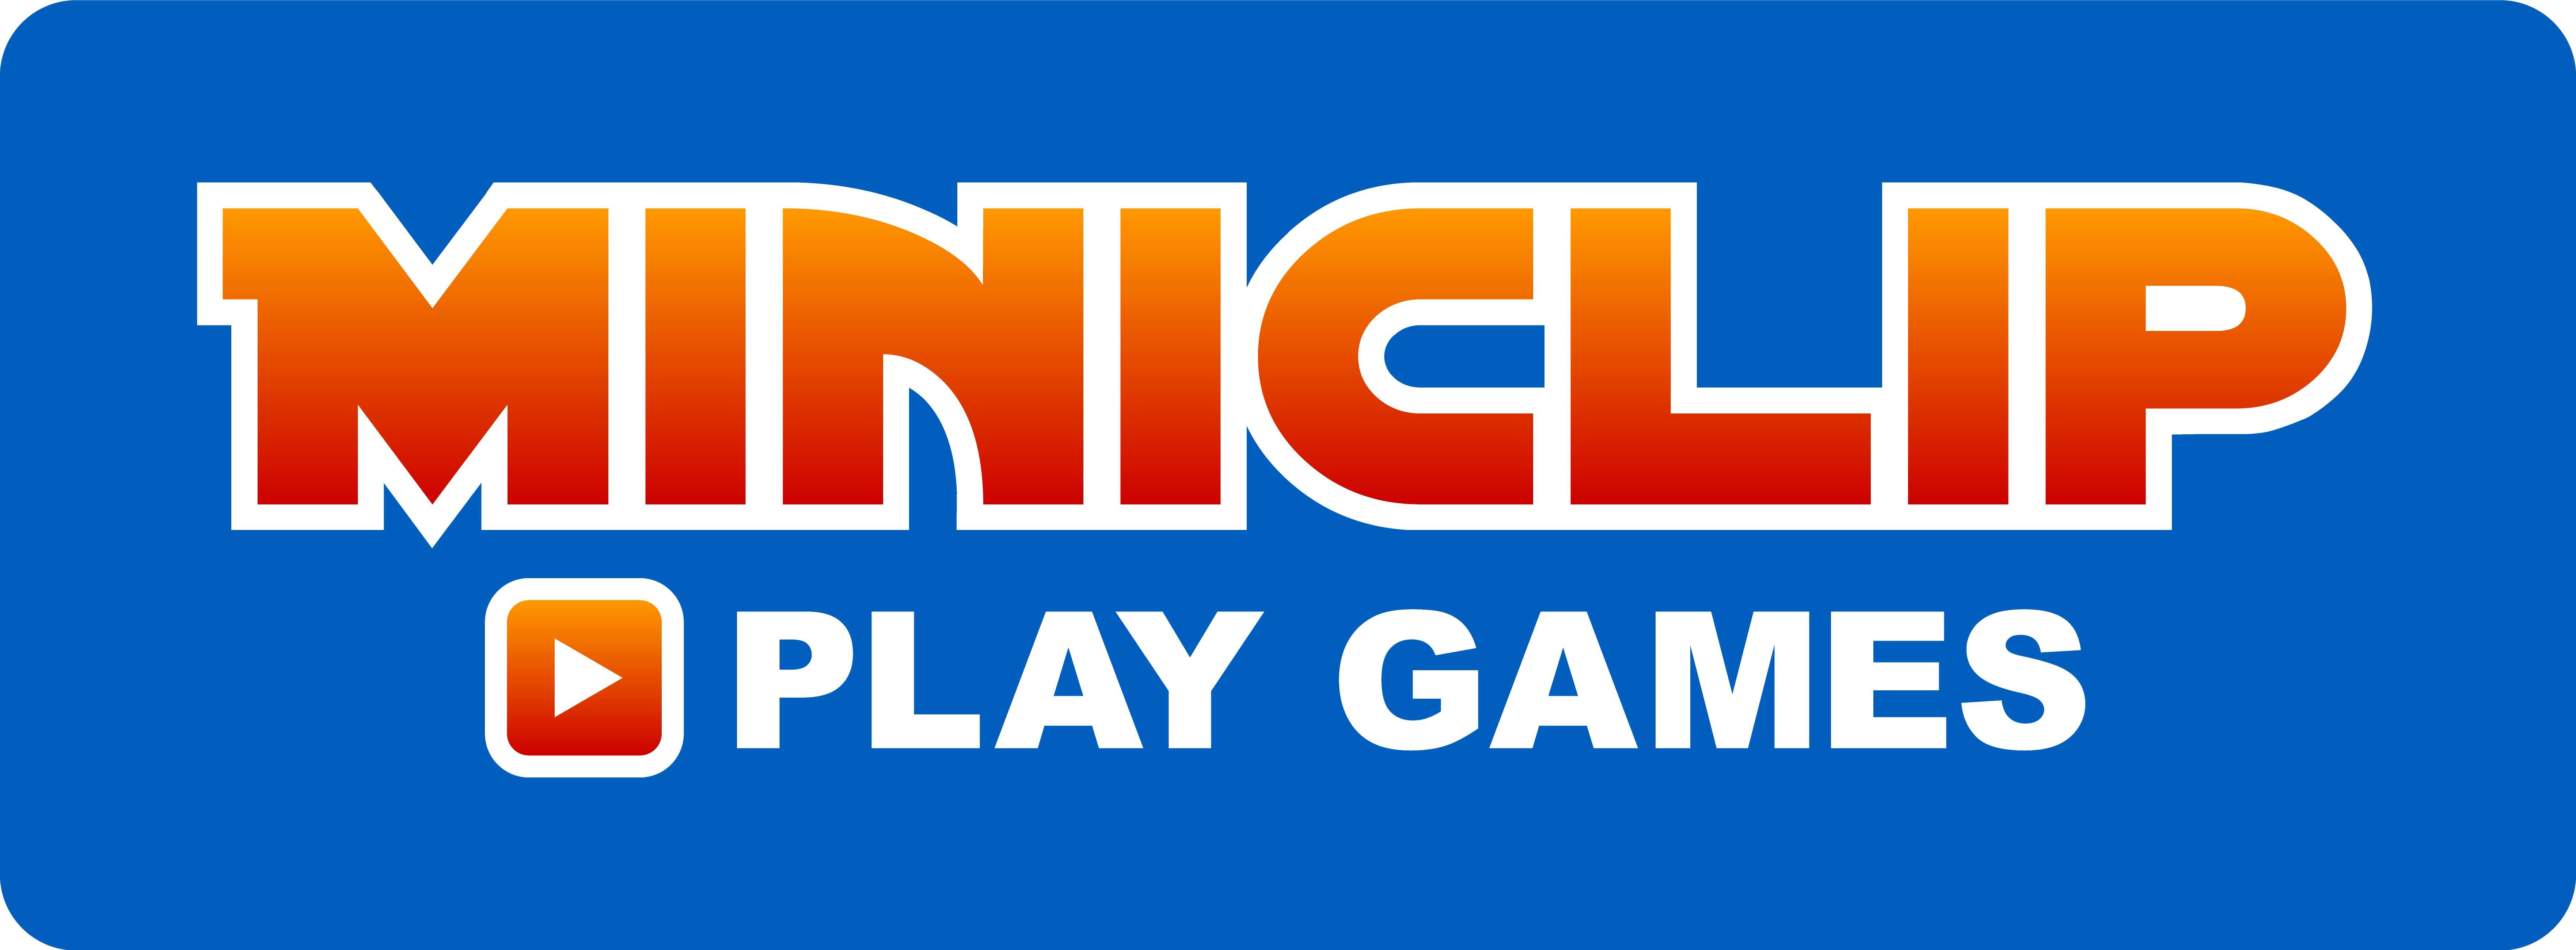 Free Online Architecture Design Konami And Miniclip Partner To Release The Number One